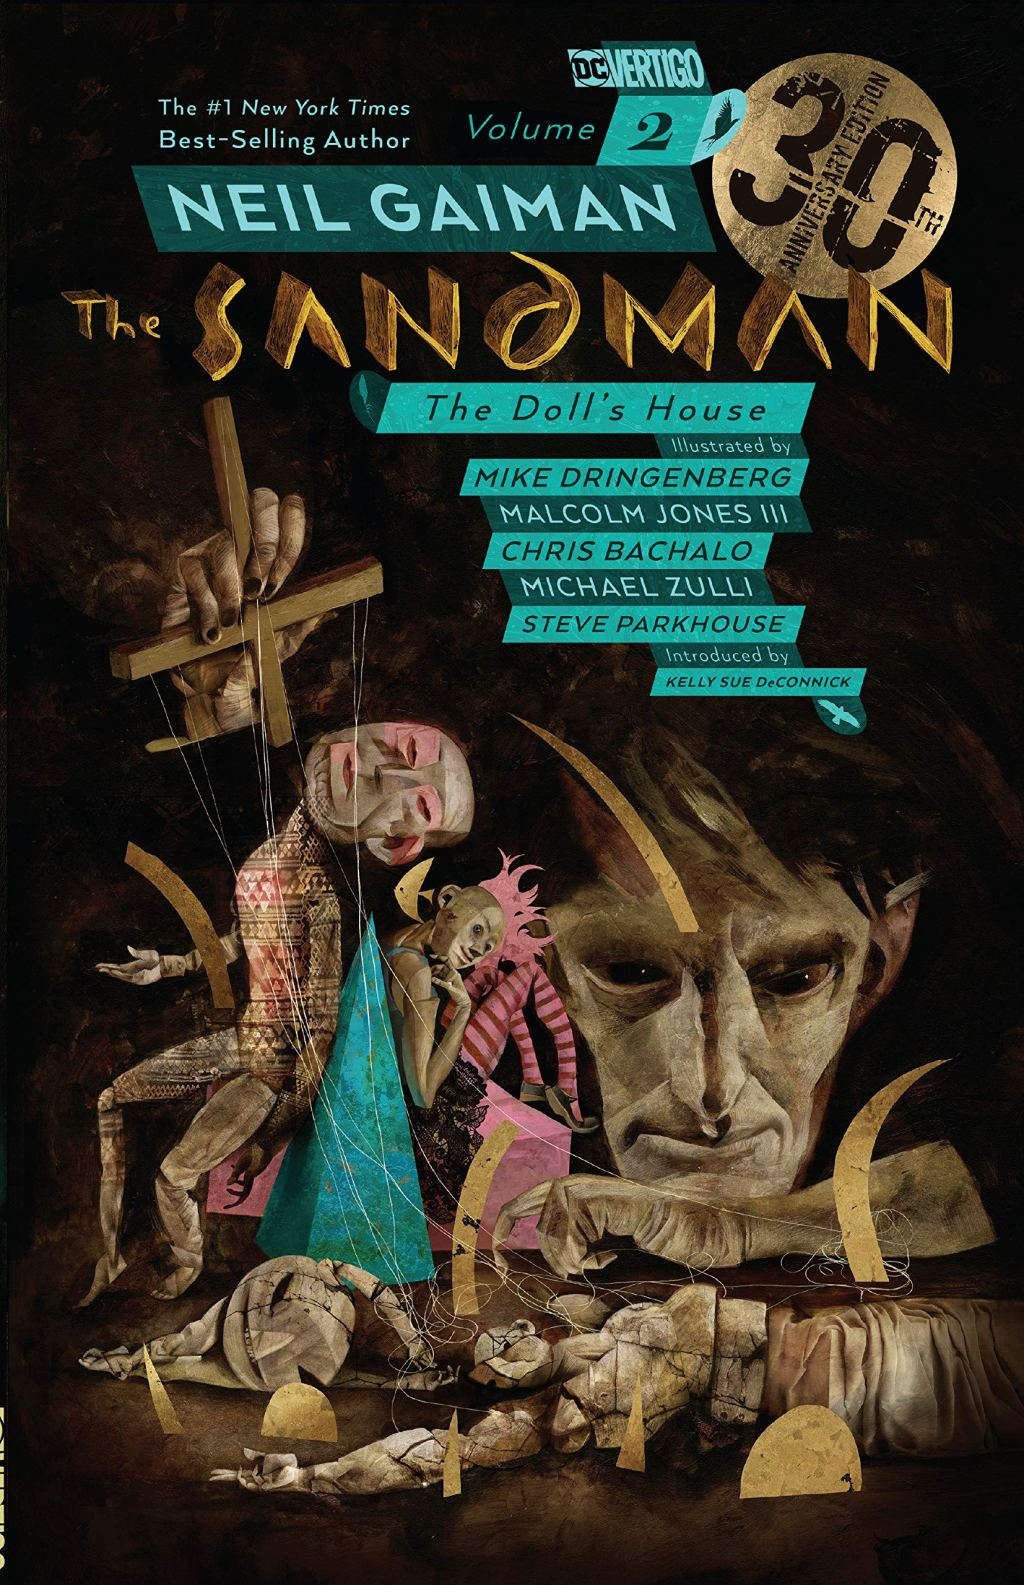 Review of Neil Gaiman's The Sandman The Doll's House 30th anniversary cover